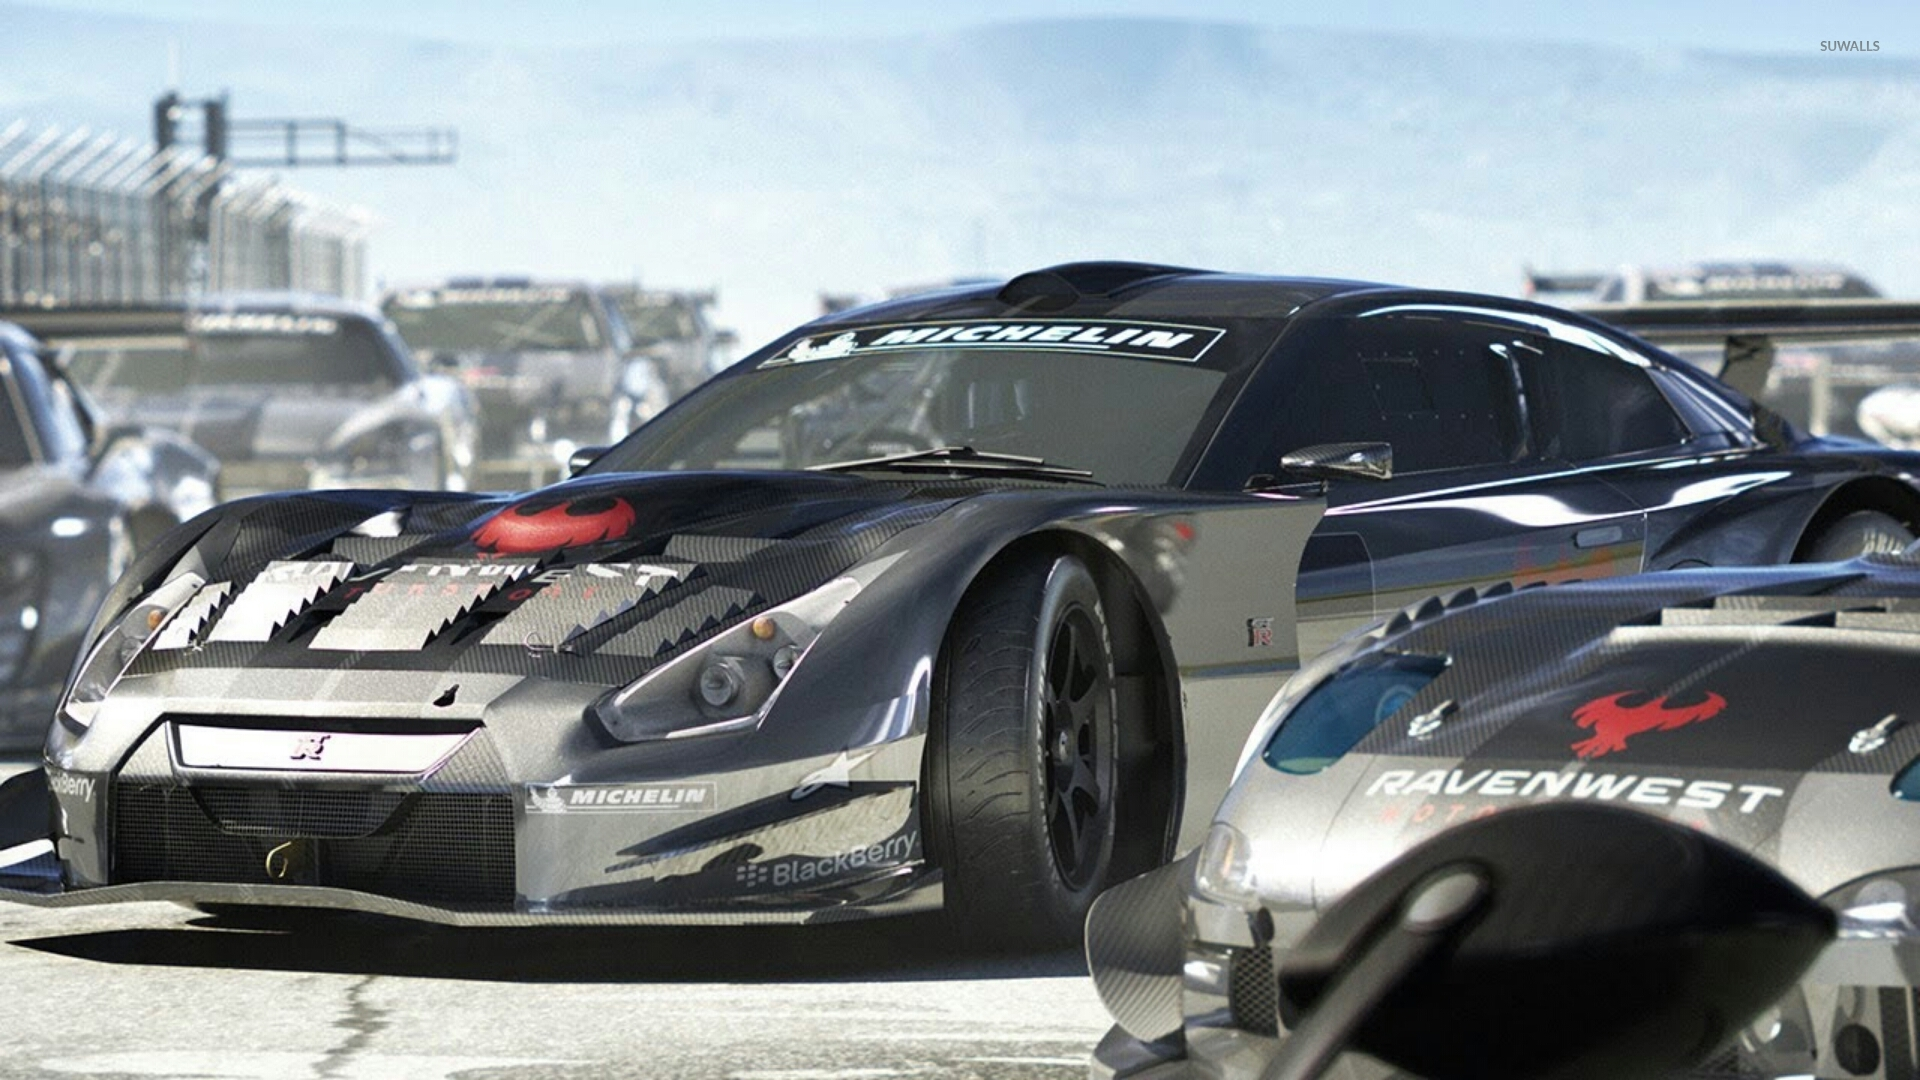 GRID Autosport [11] wallpaper - Game wallpapers - #30988